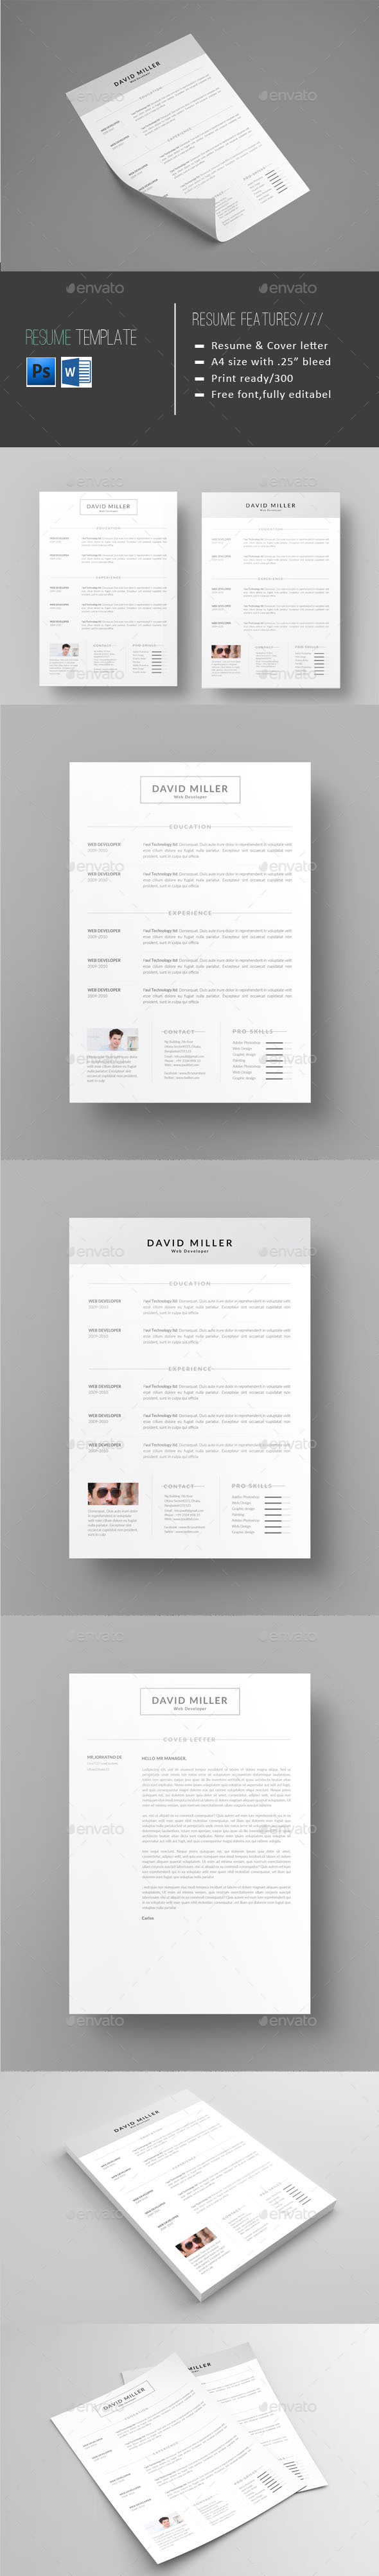 Resume Design Template Resumes Stationery Template